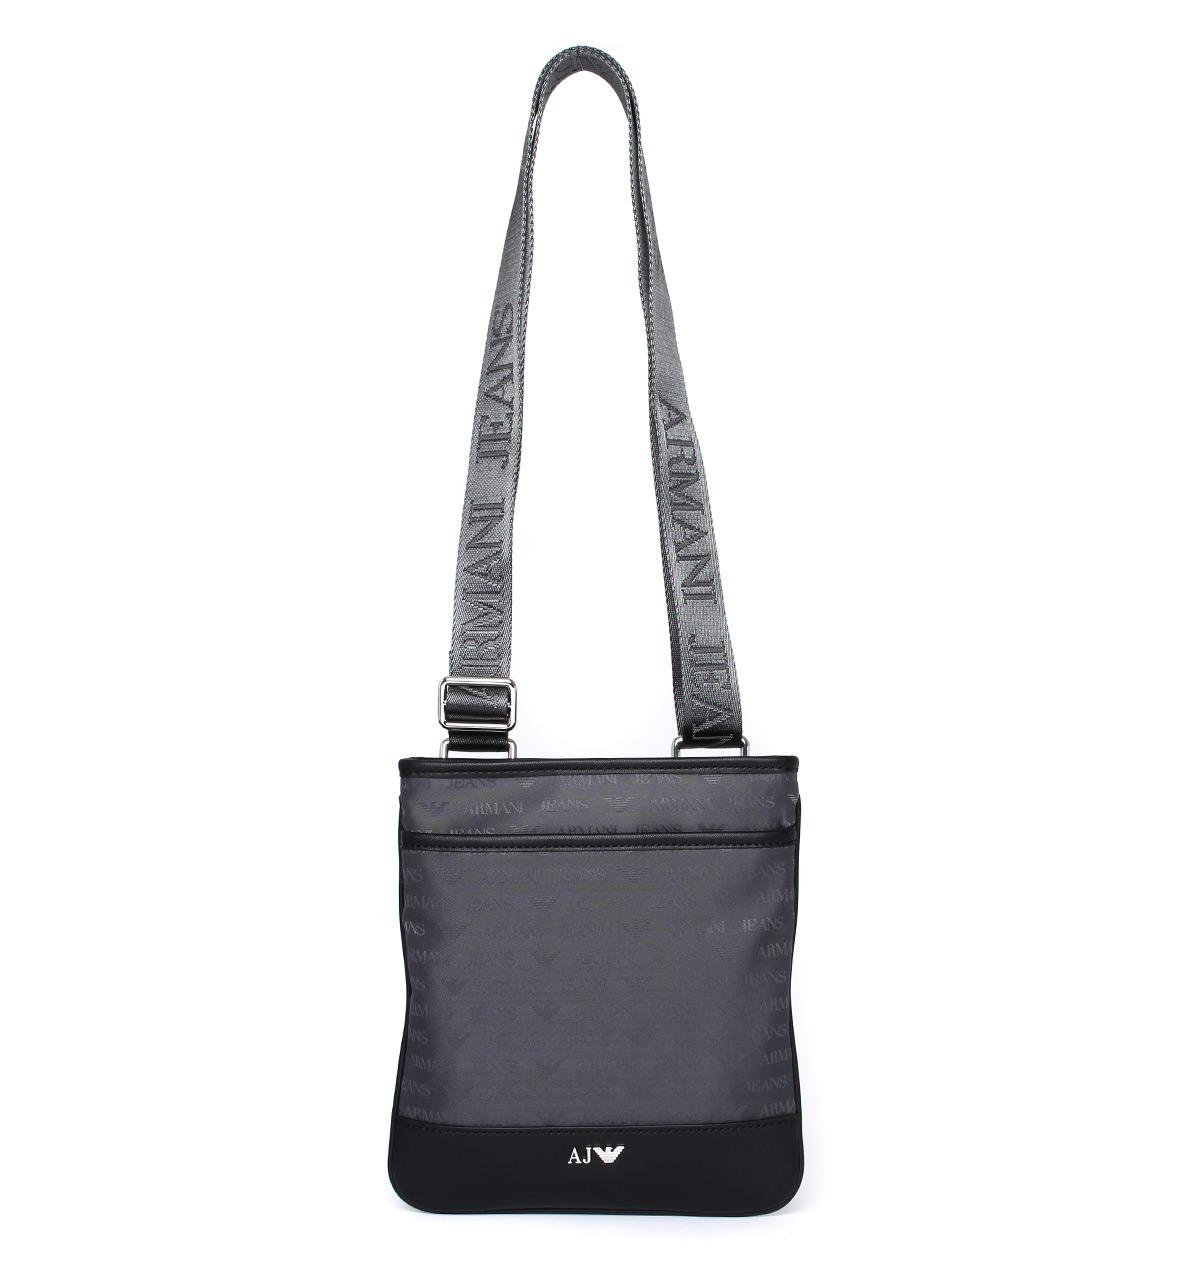 54ac764288a best service 1116e 7071c lyst armani jeans grey classic airline bag in gray  for men